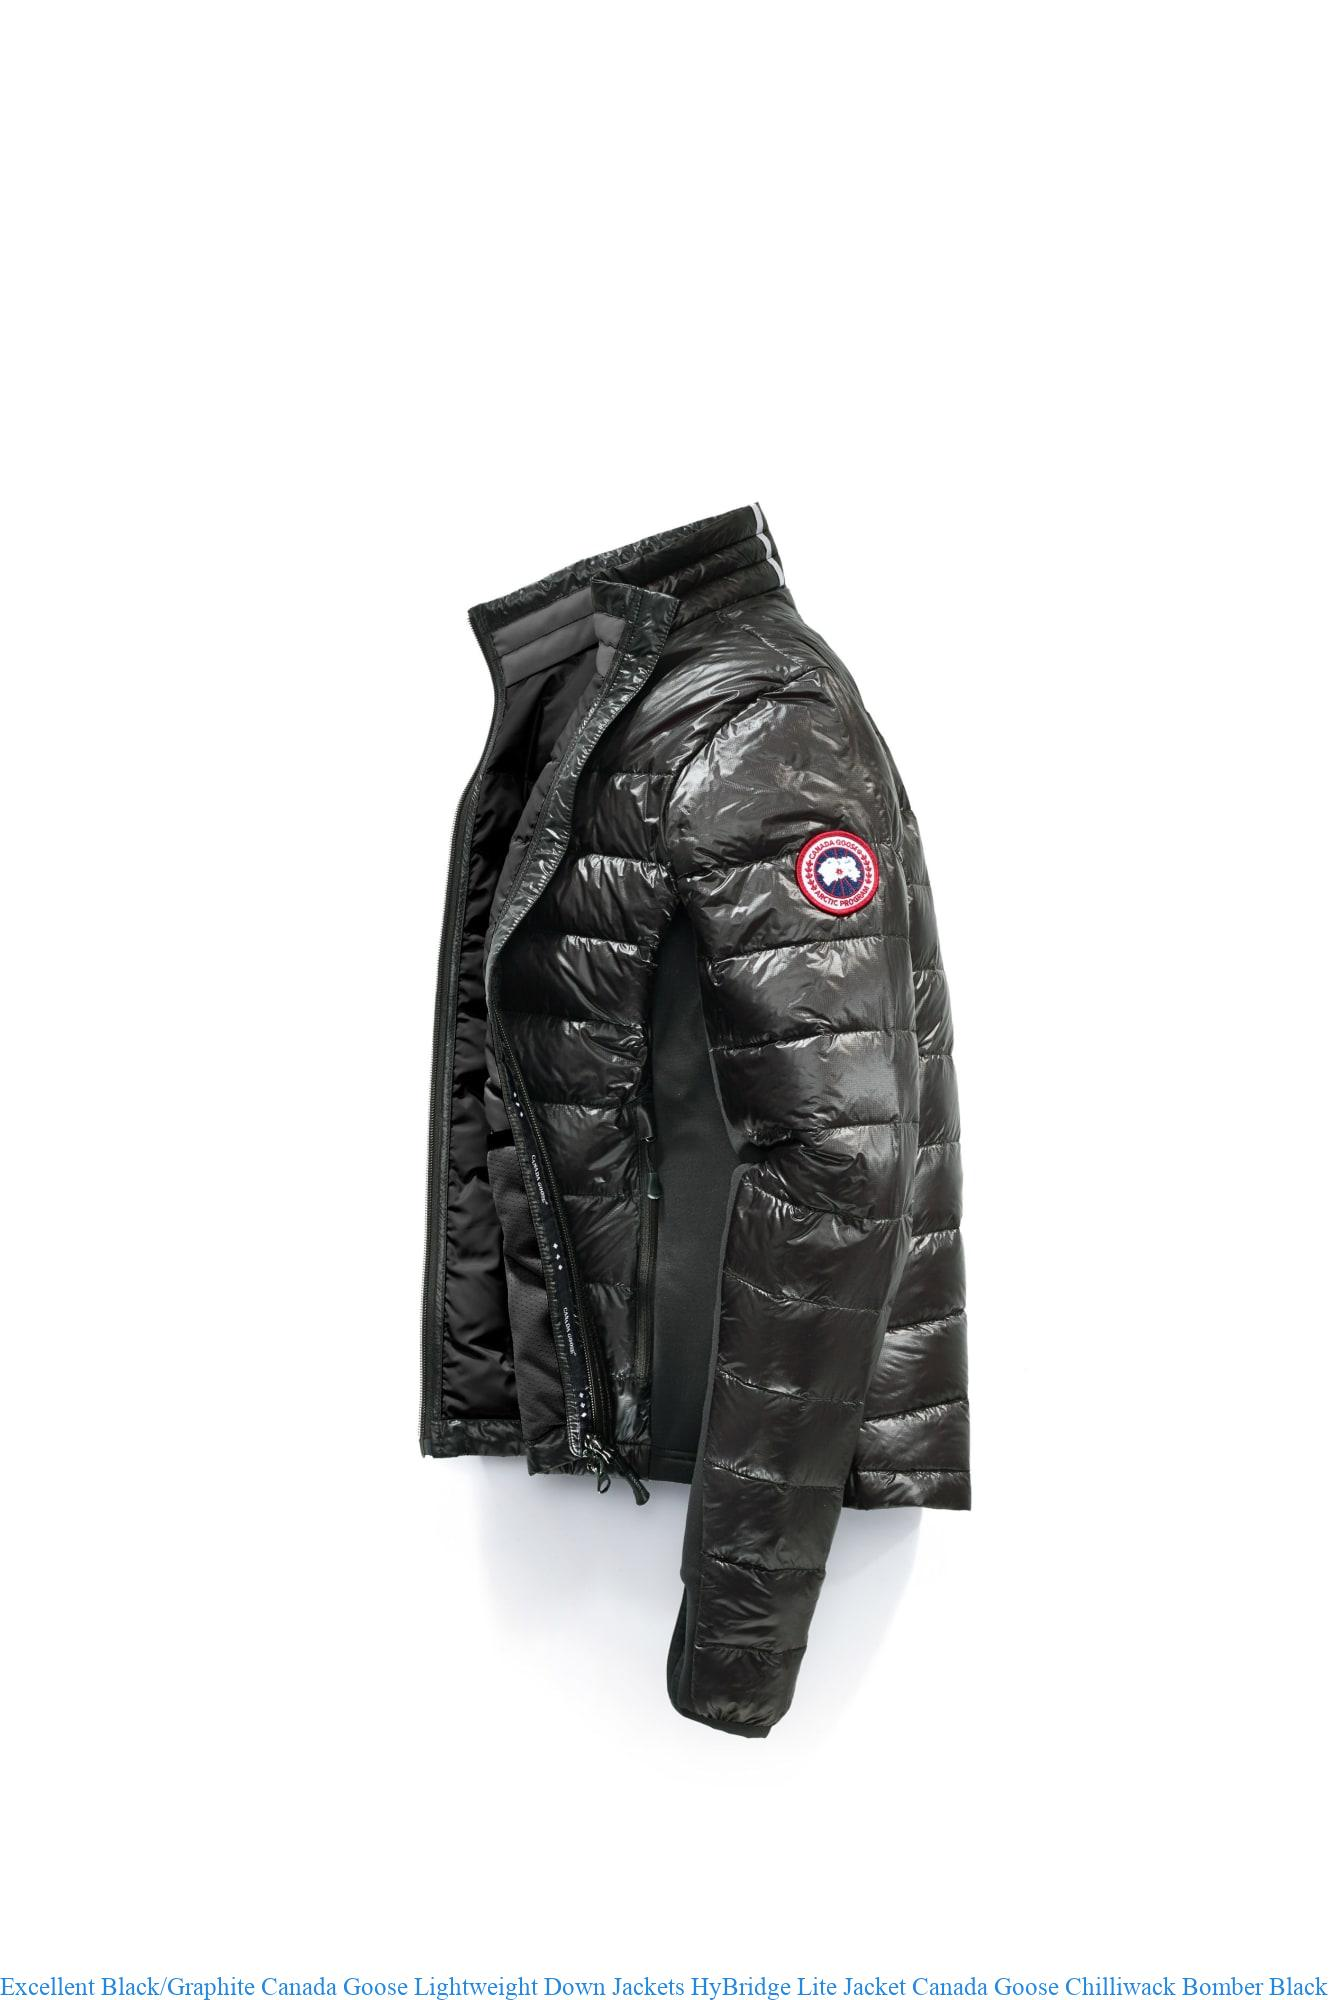 uk cheap sale hot sale exceptional range of styles Excellent Black/Graphite Canada Goose Lightweight Down Jackets HyBridge  Lite Jacket Canada Goose Chilliwack Bomber Black Friday 2701L